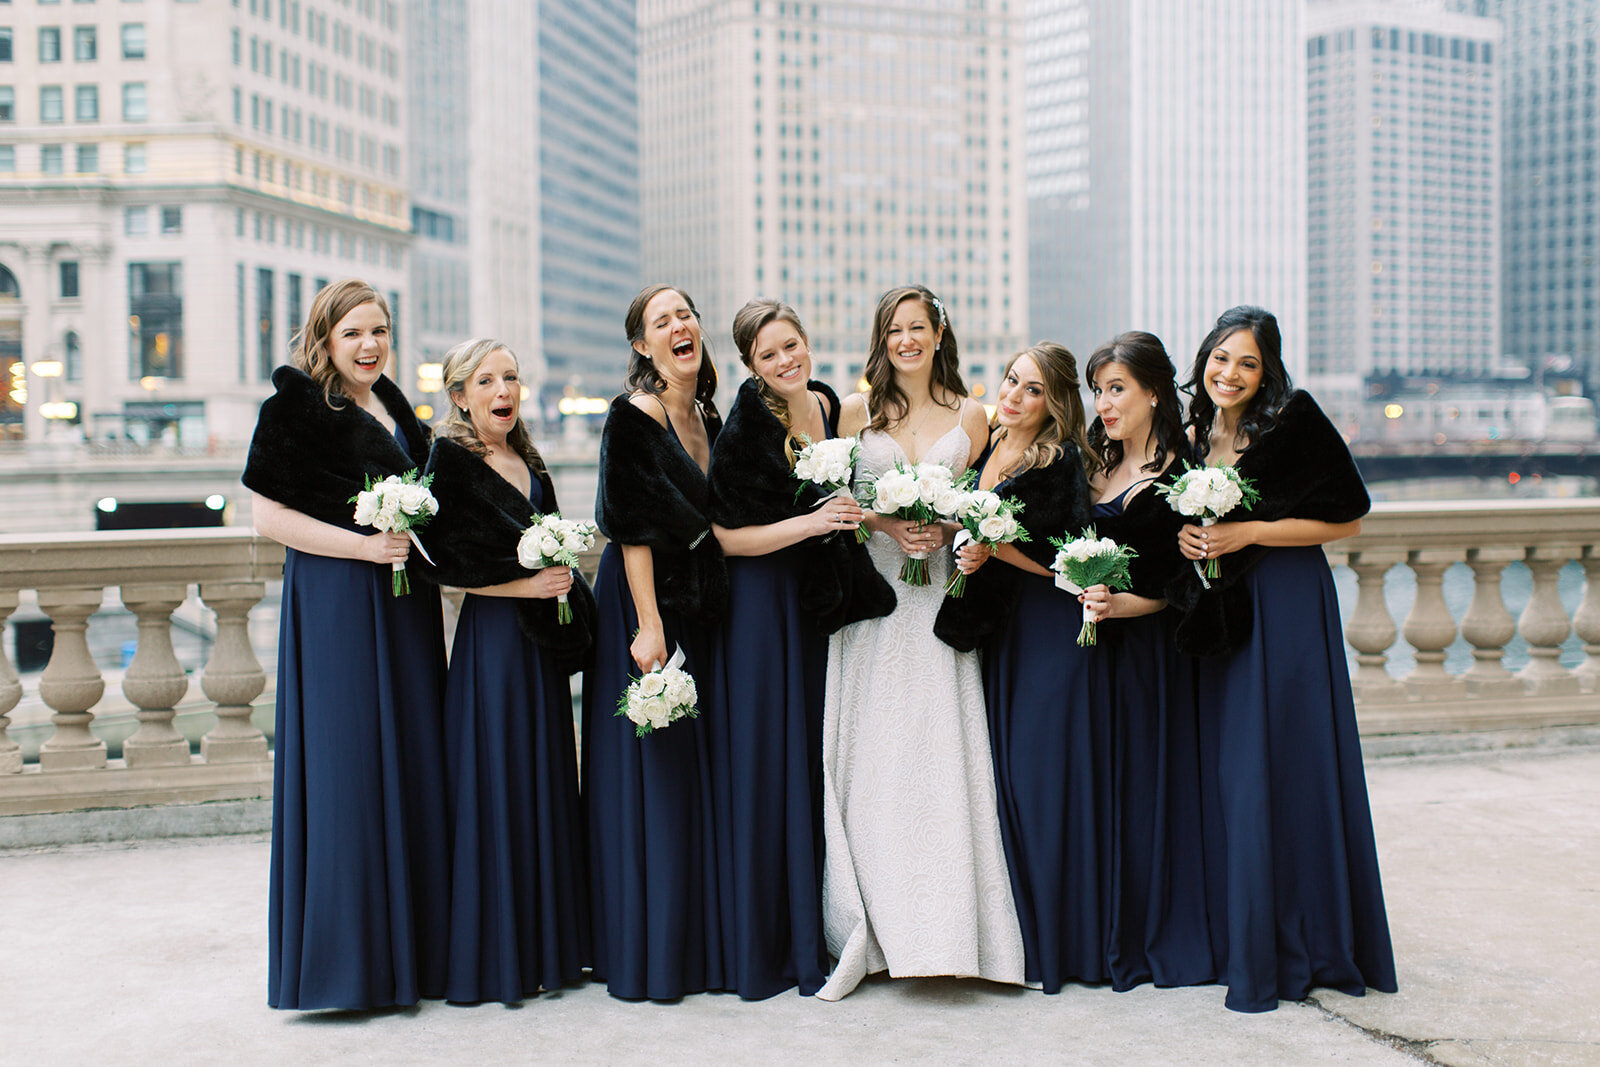 12-Venue-Six10-Wedding-bridesmaids